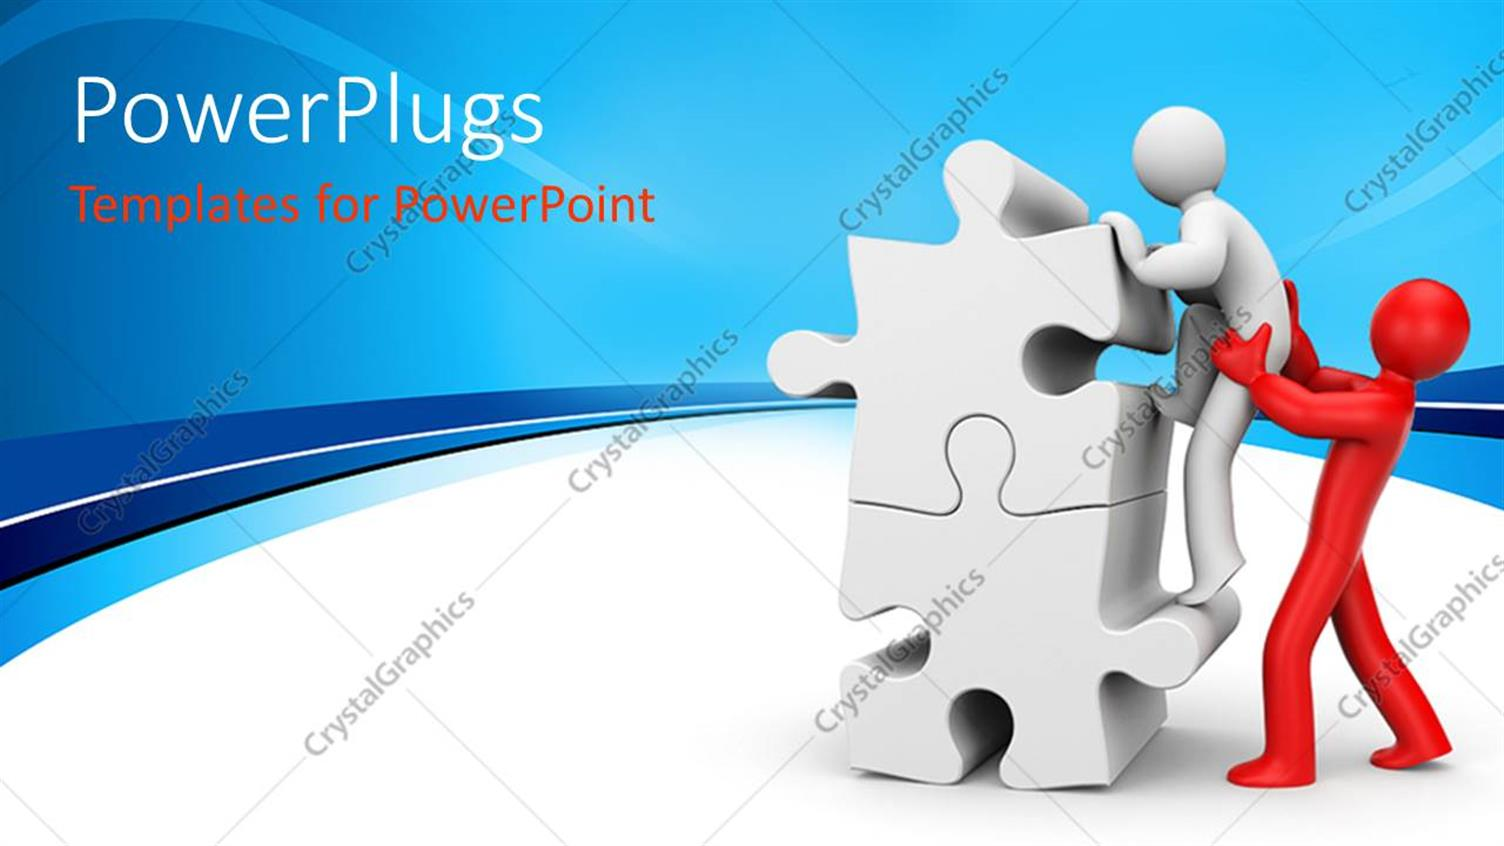 PowerPoint Template Displaying 3D Man Renders Helping Hand to Mate Climbing Puzzle